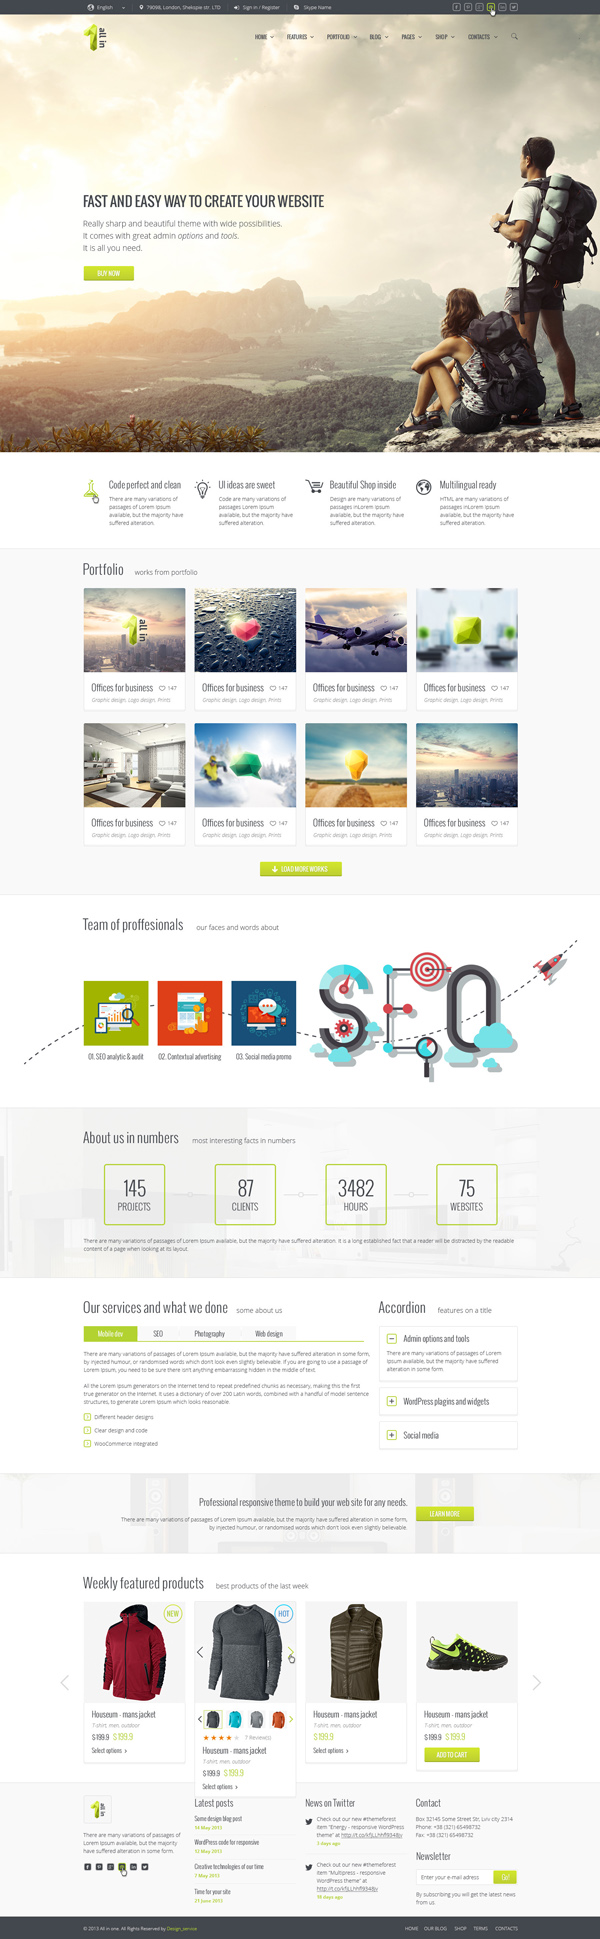 All in 1 - PSD HTML5 Template Multi-Purpose Business